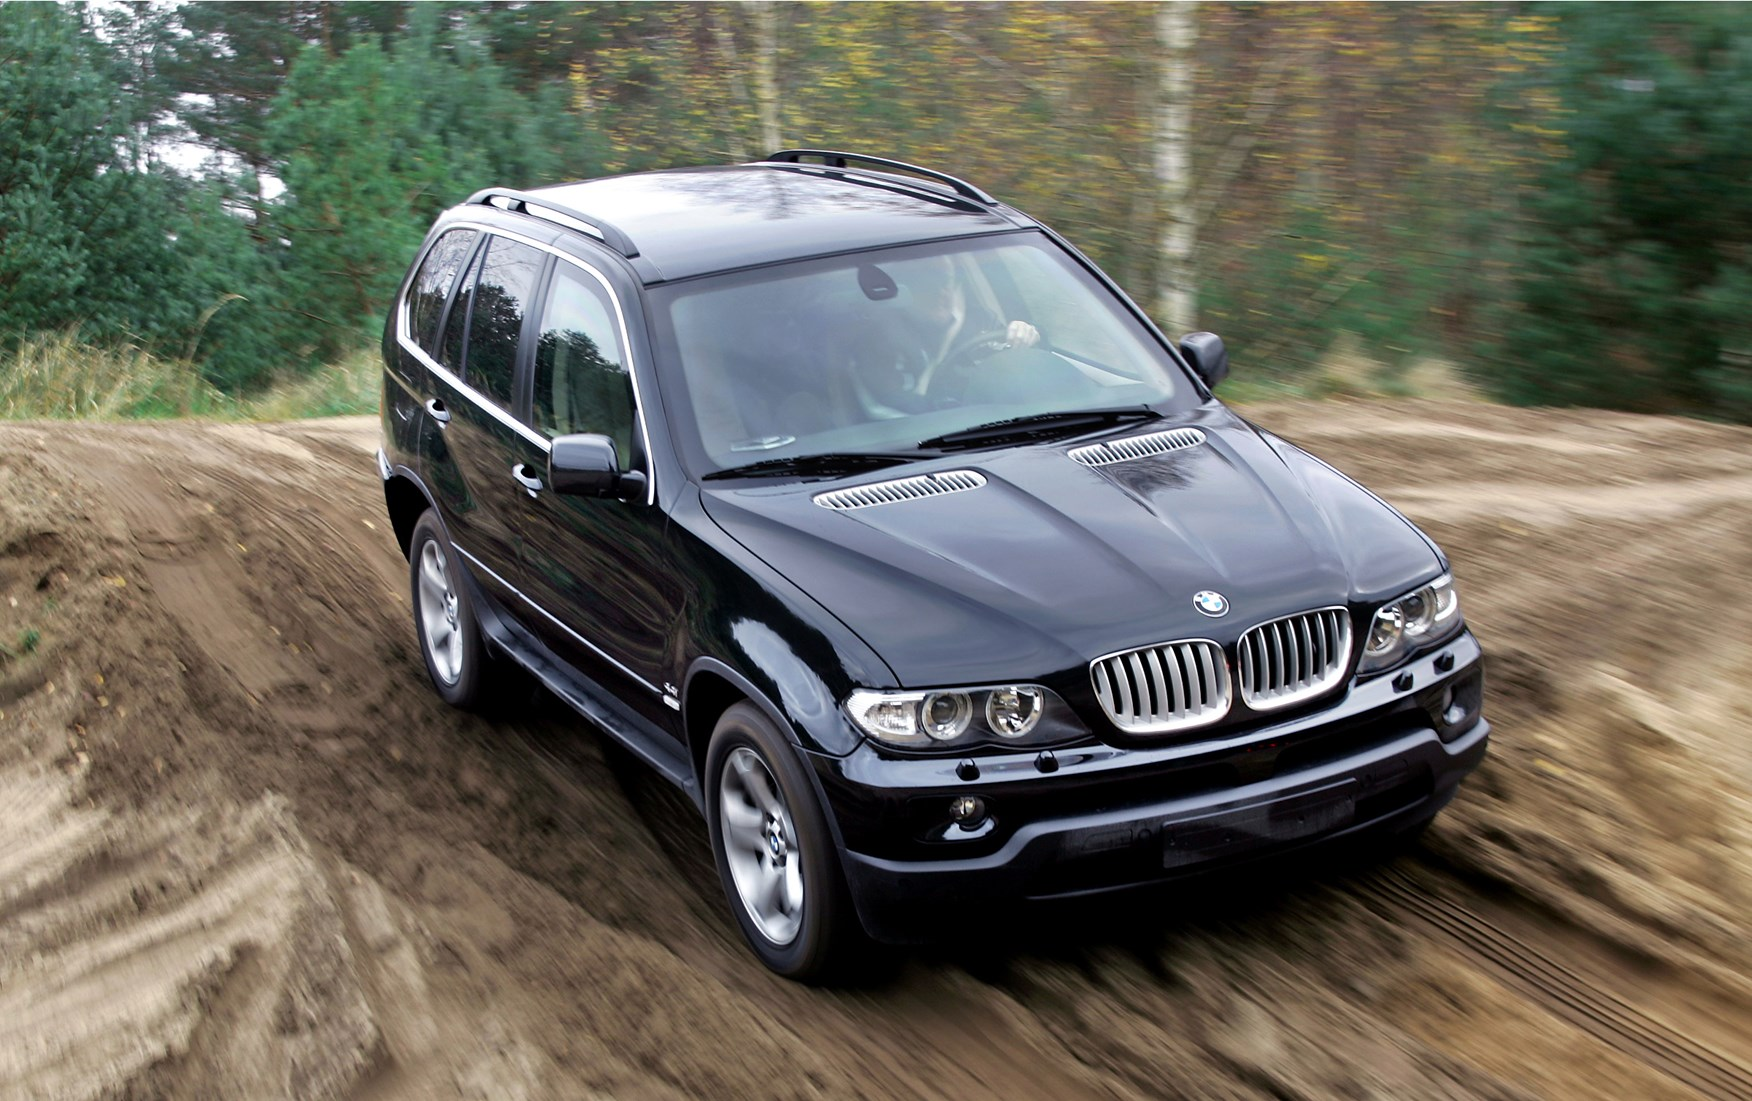 View all images of the bmw x5 00 06